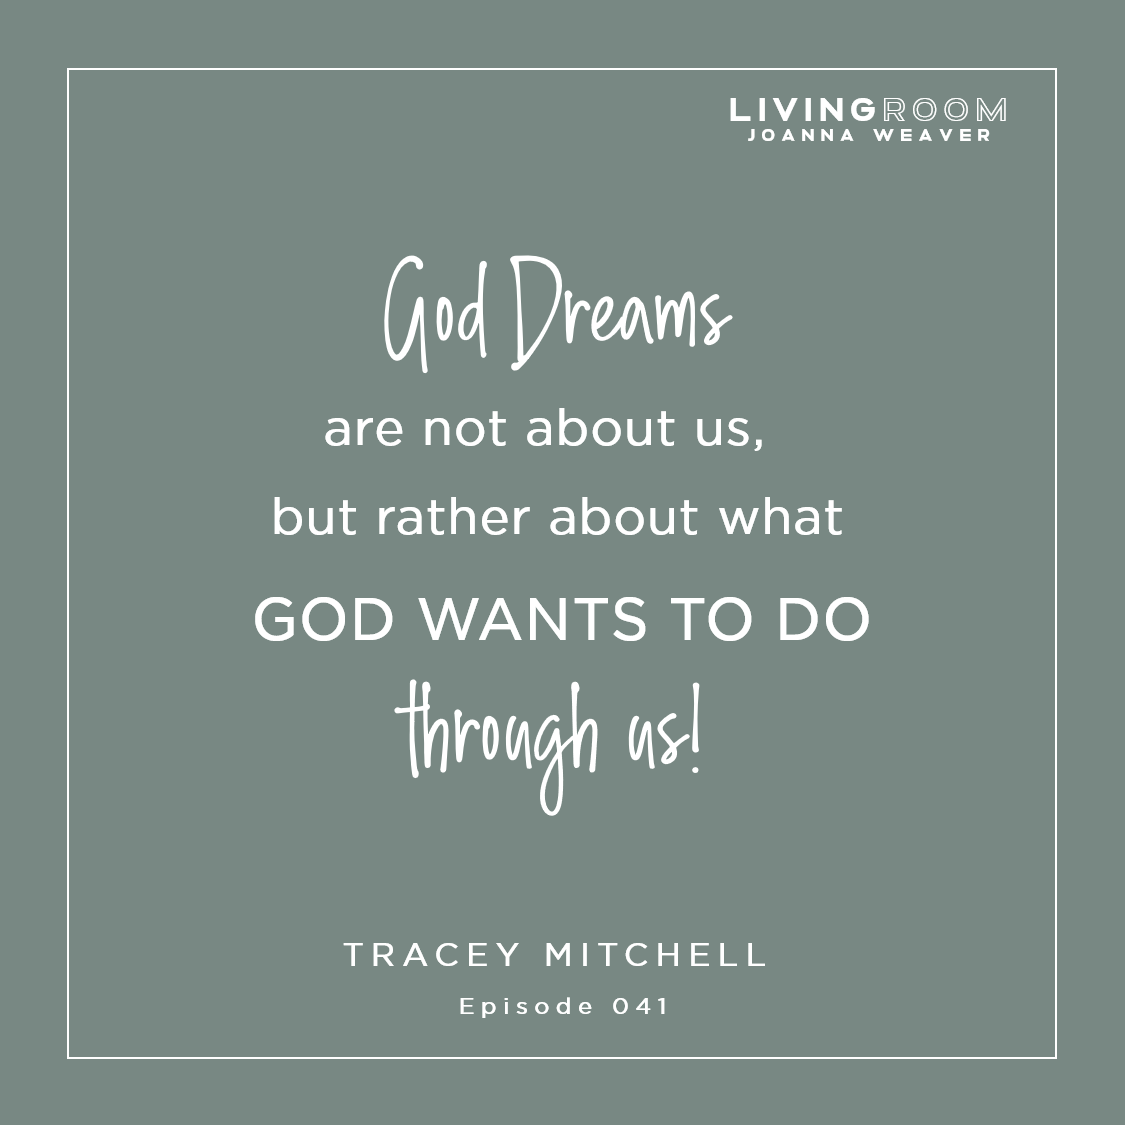 """God dreams"" are not about us, but rather about what God wants to do through us."" - Tracey Mitchell - The Living Room - Episode 041"